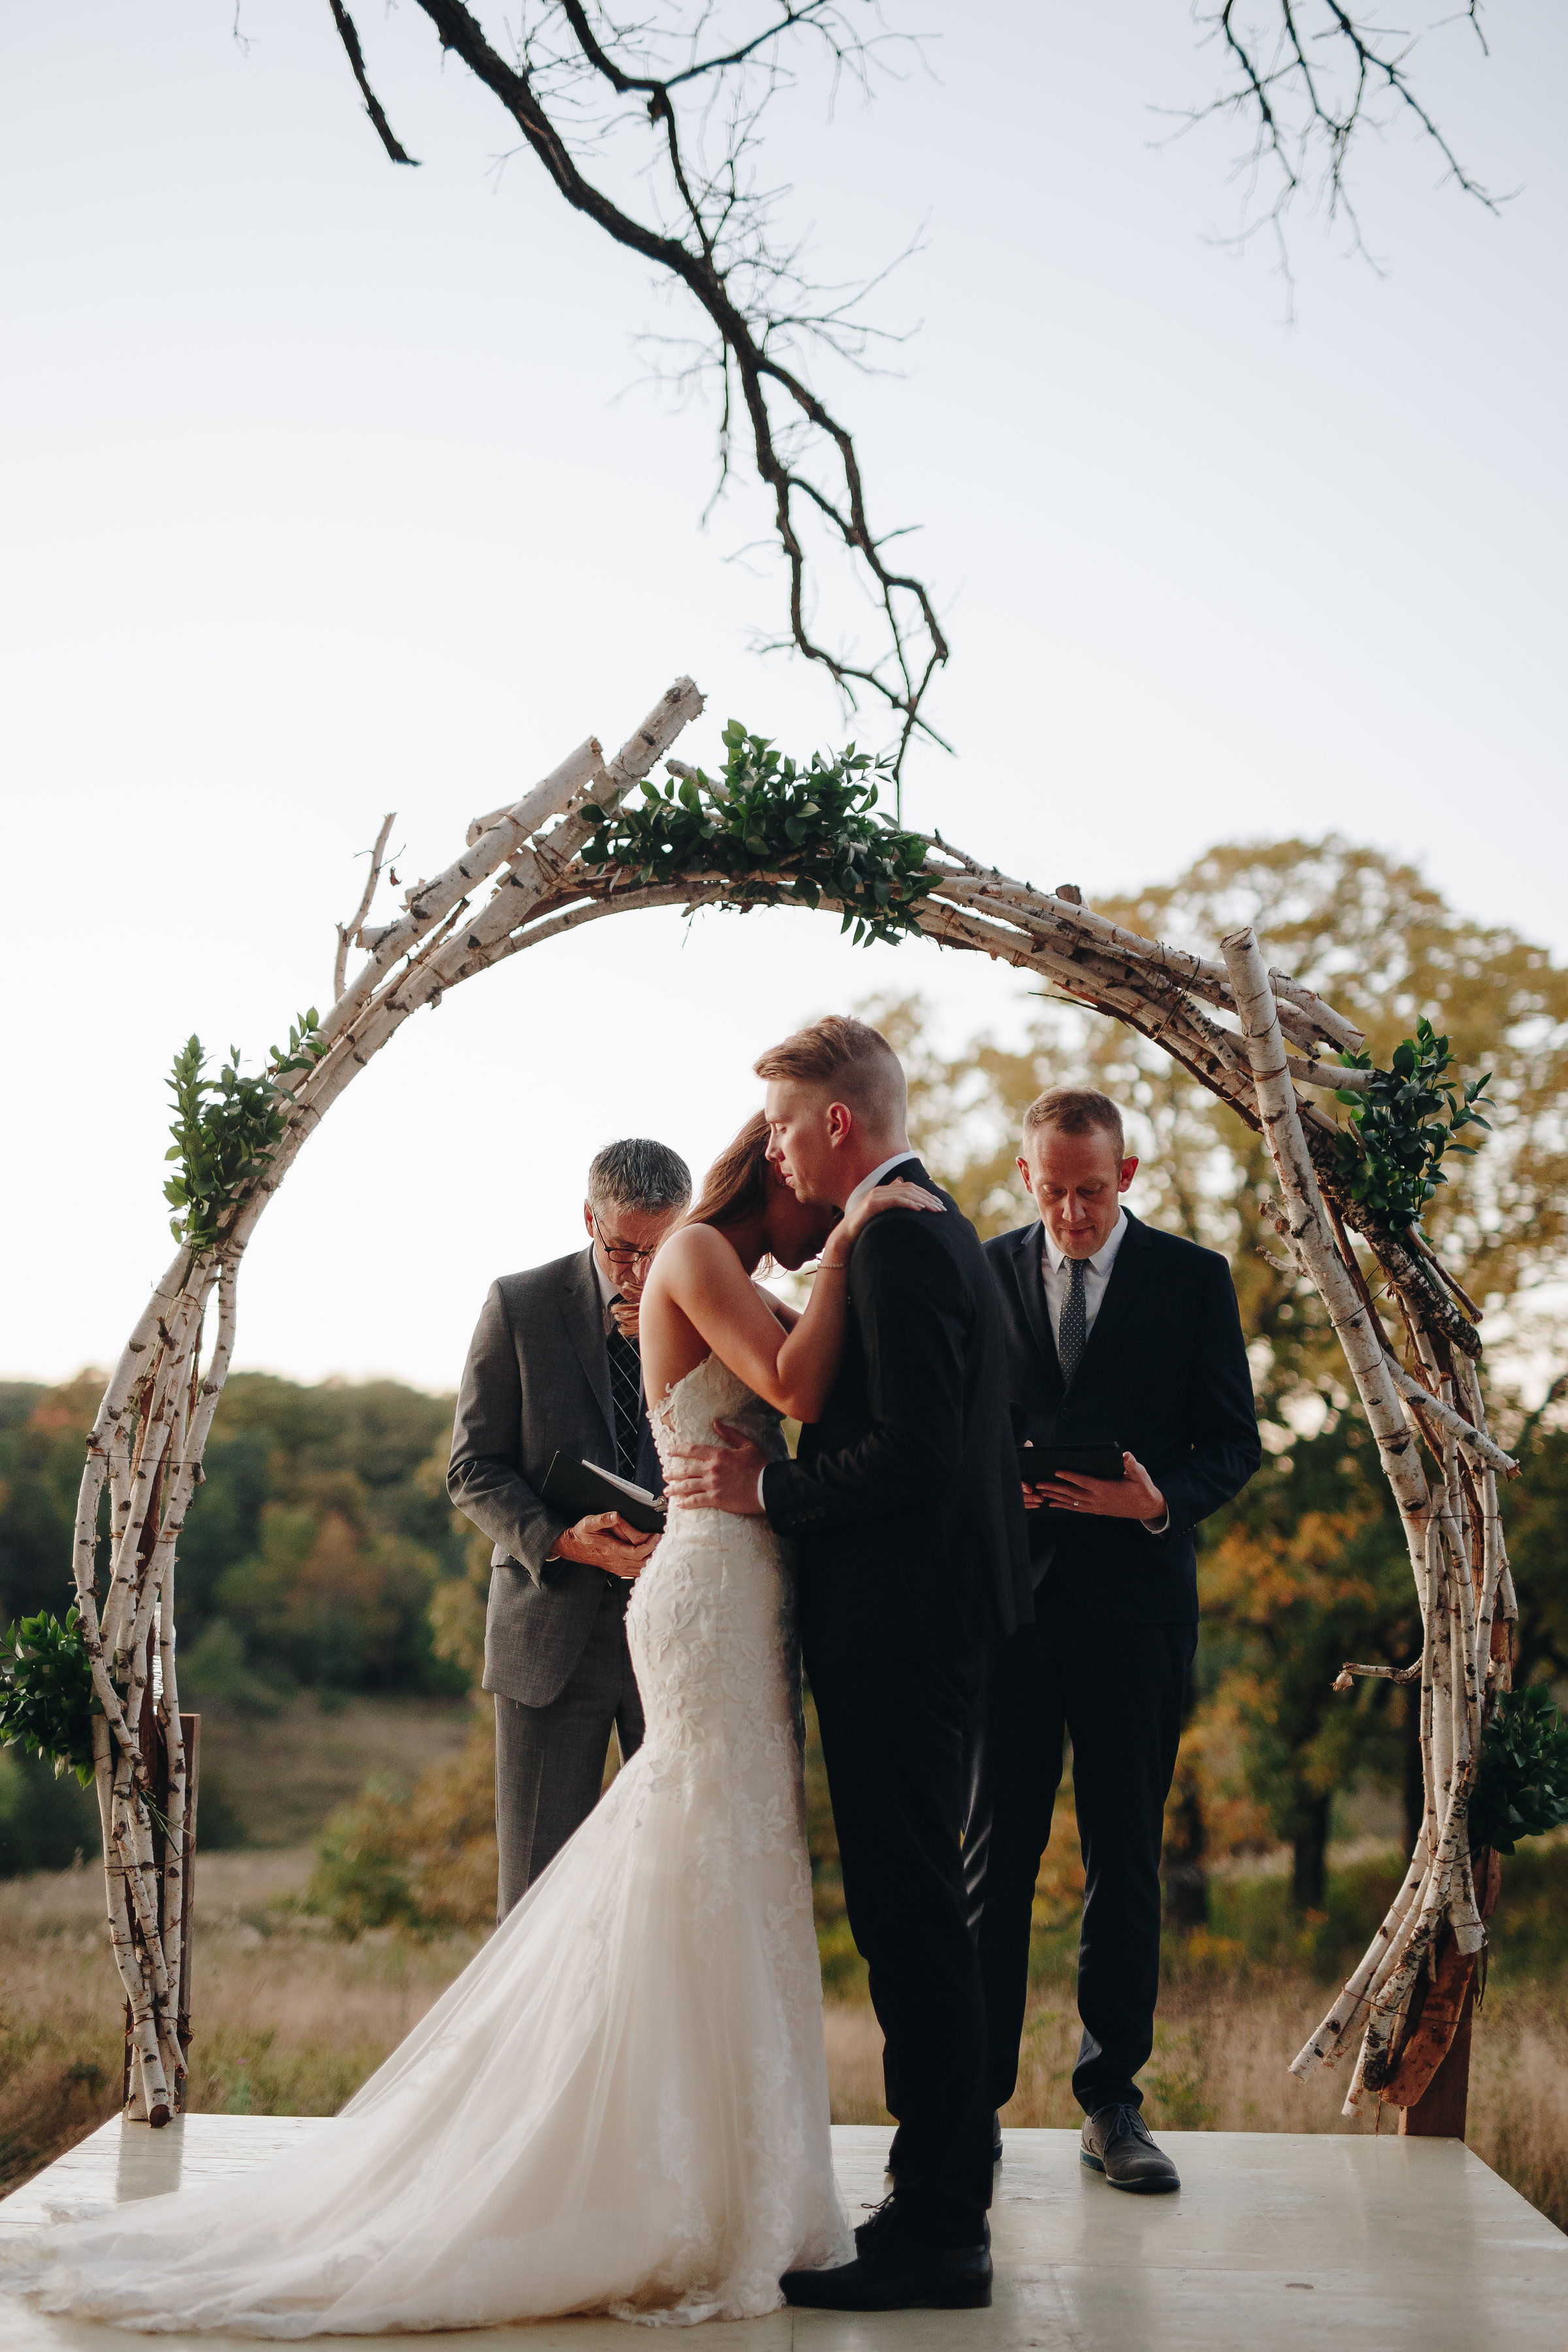 Intimate wedding ceremony moment after sunset in outdoor minneapolis wedding